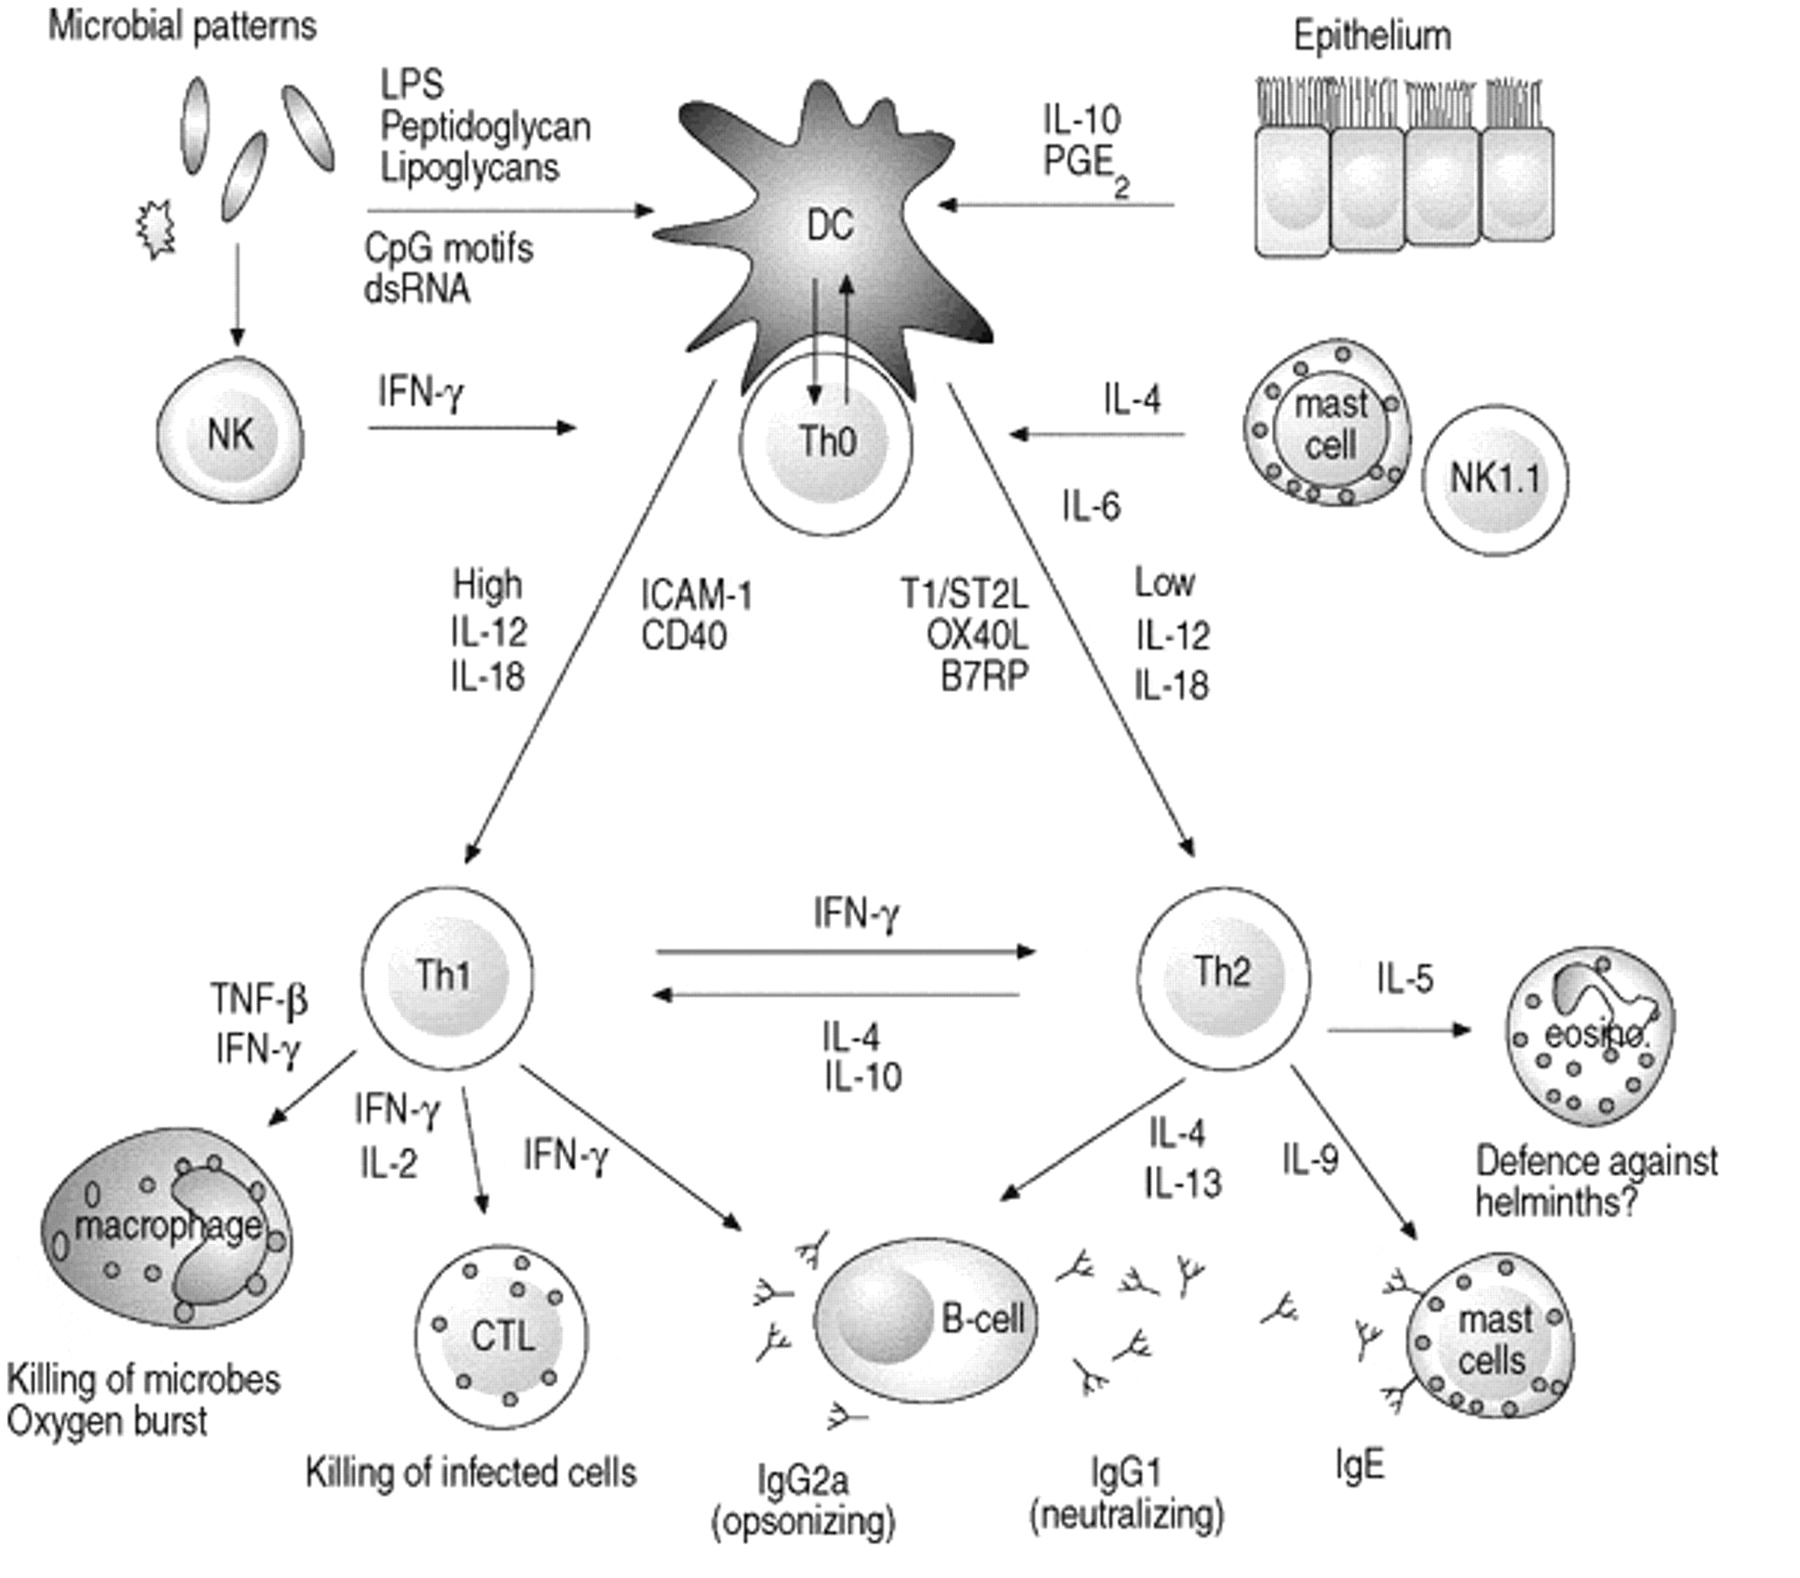 immature dendritic cells - photo #25